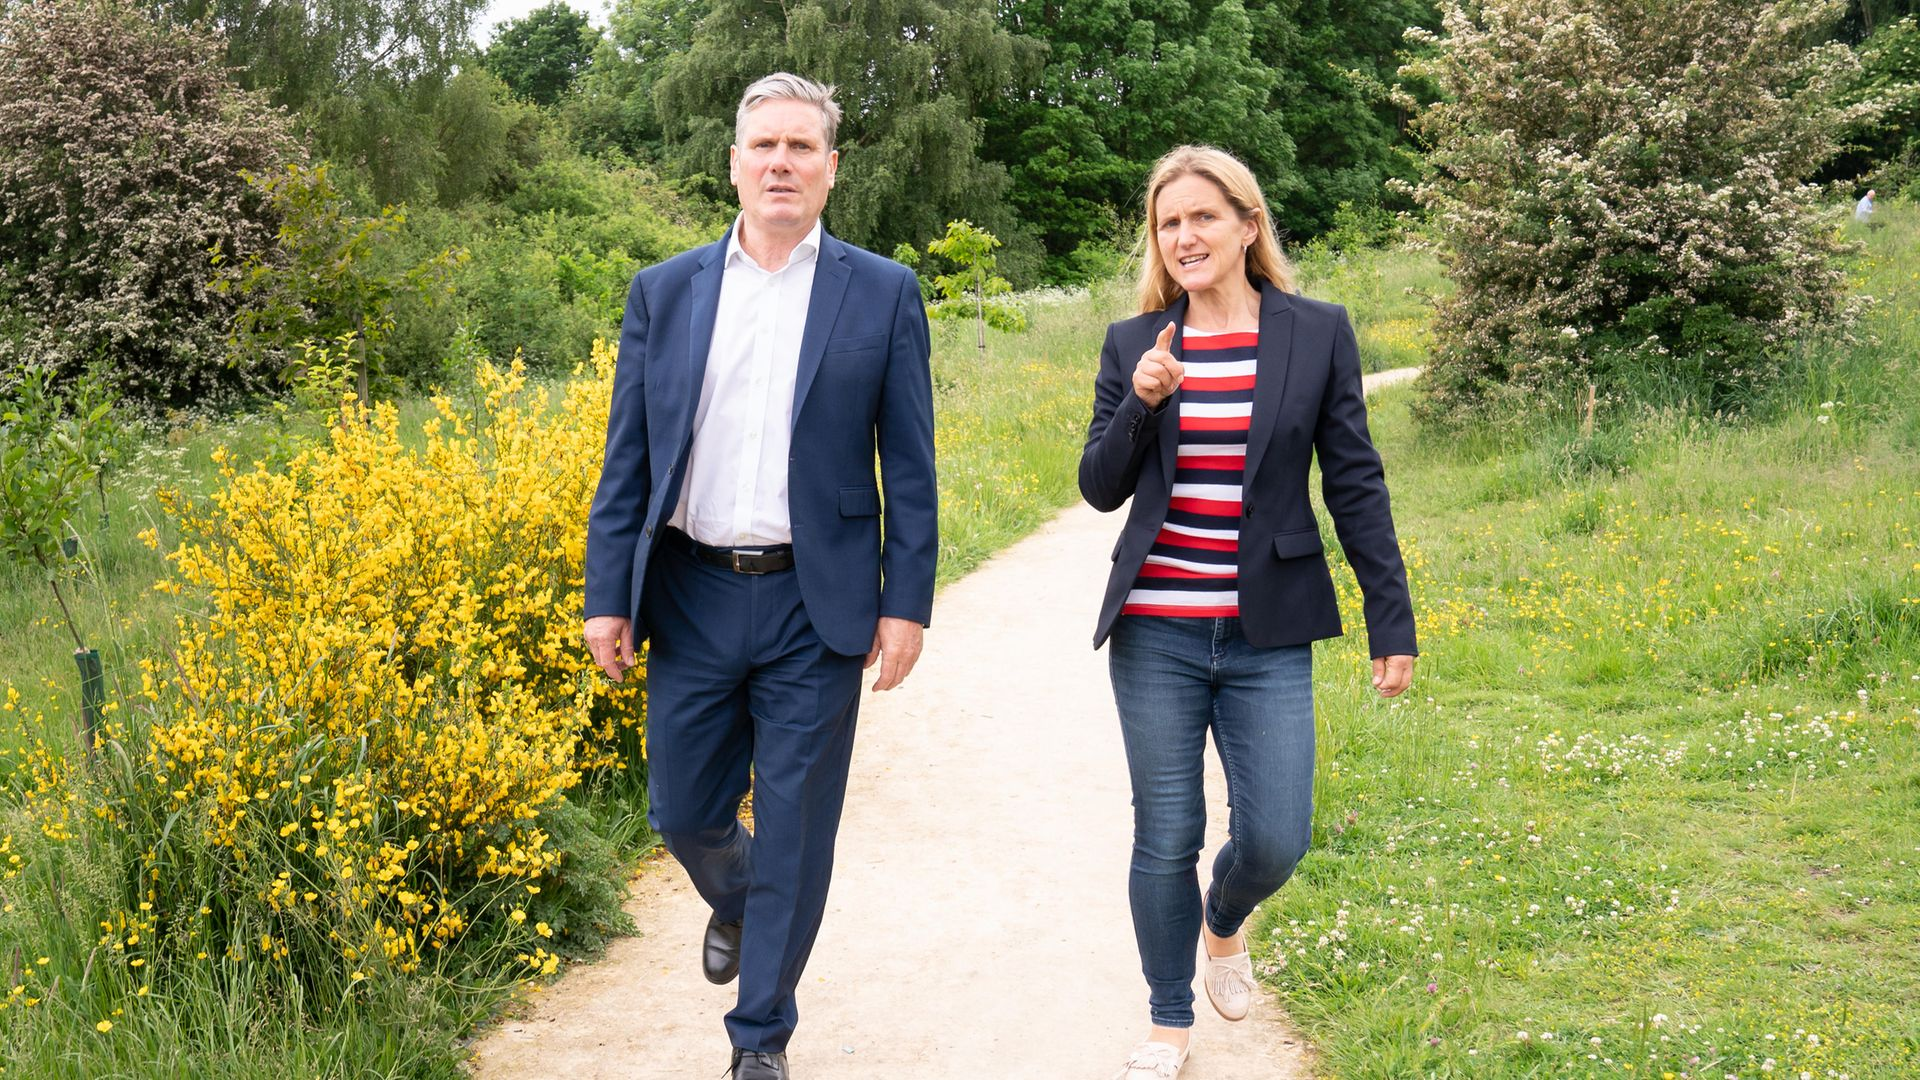 Labour Leader Keir Starmer and Labour candidate Kim Leadbeater during a visit to the Jo Cox Community Wood in Liversedge - Credit: PA